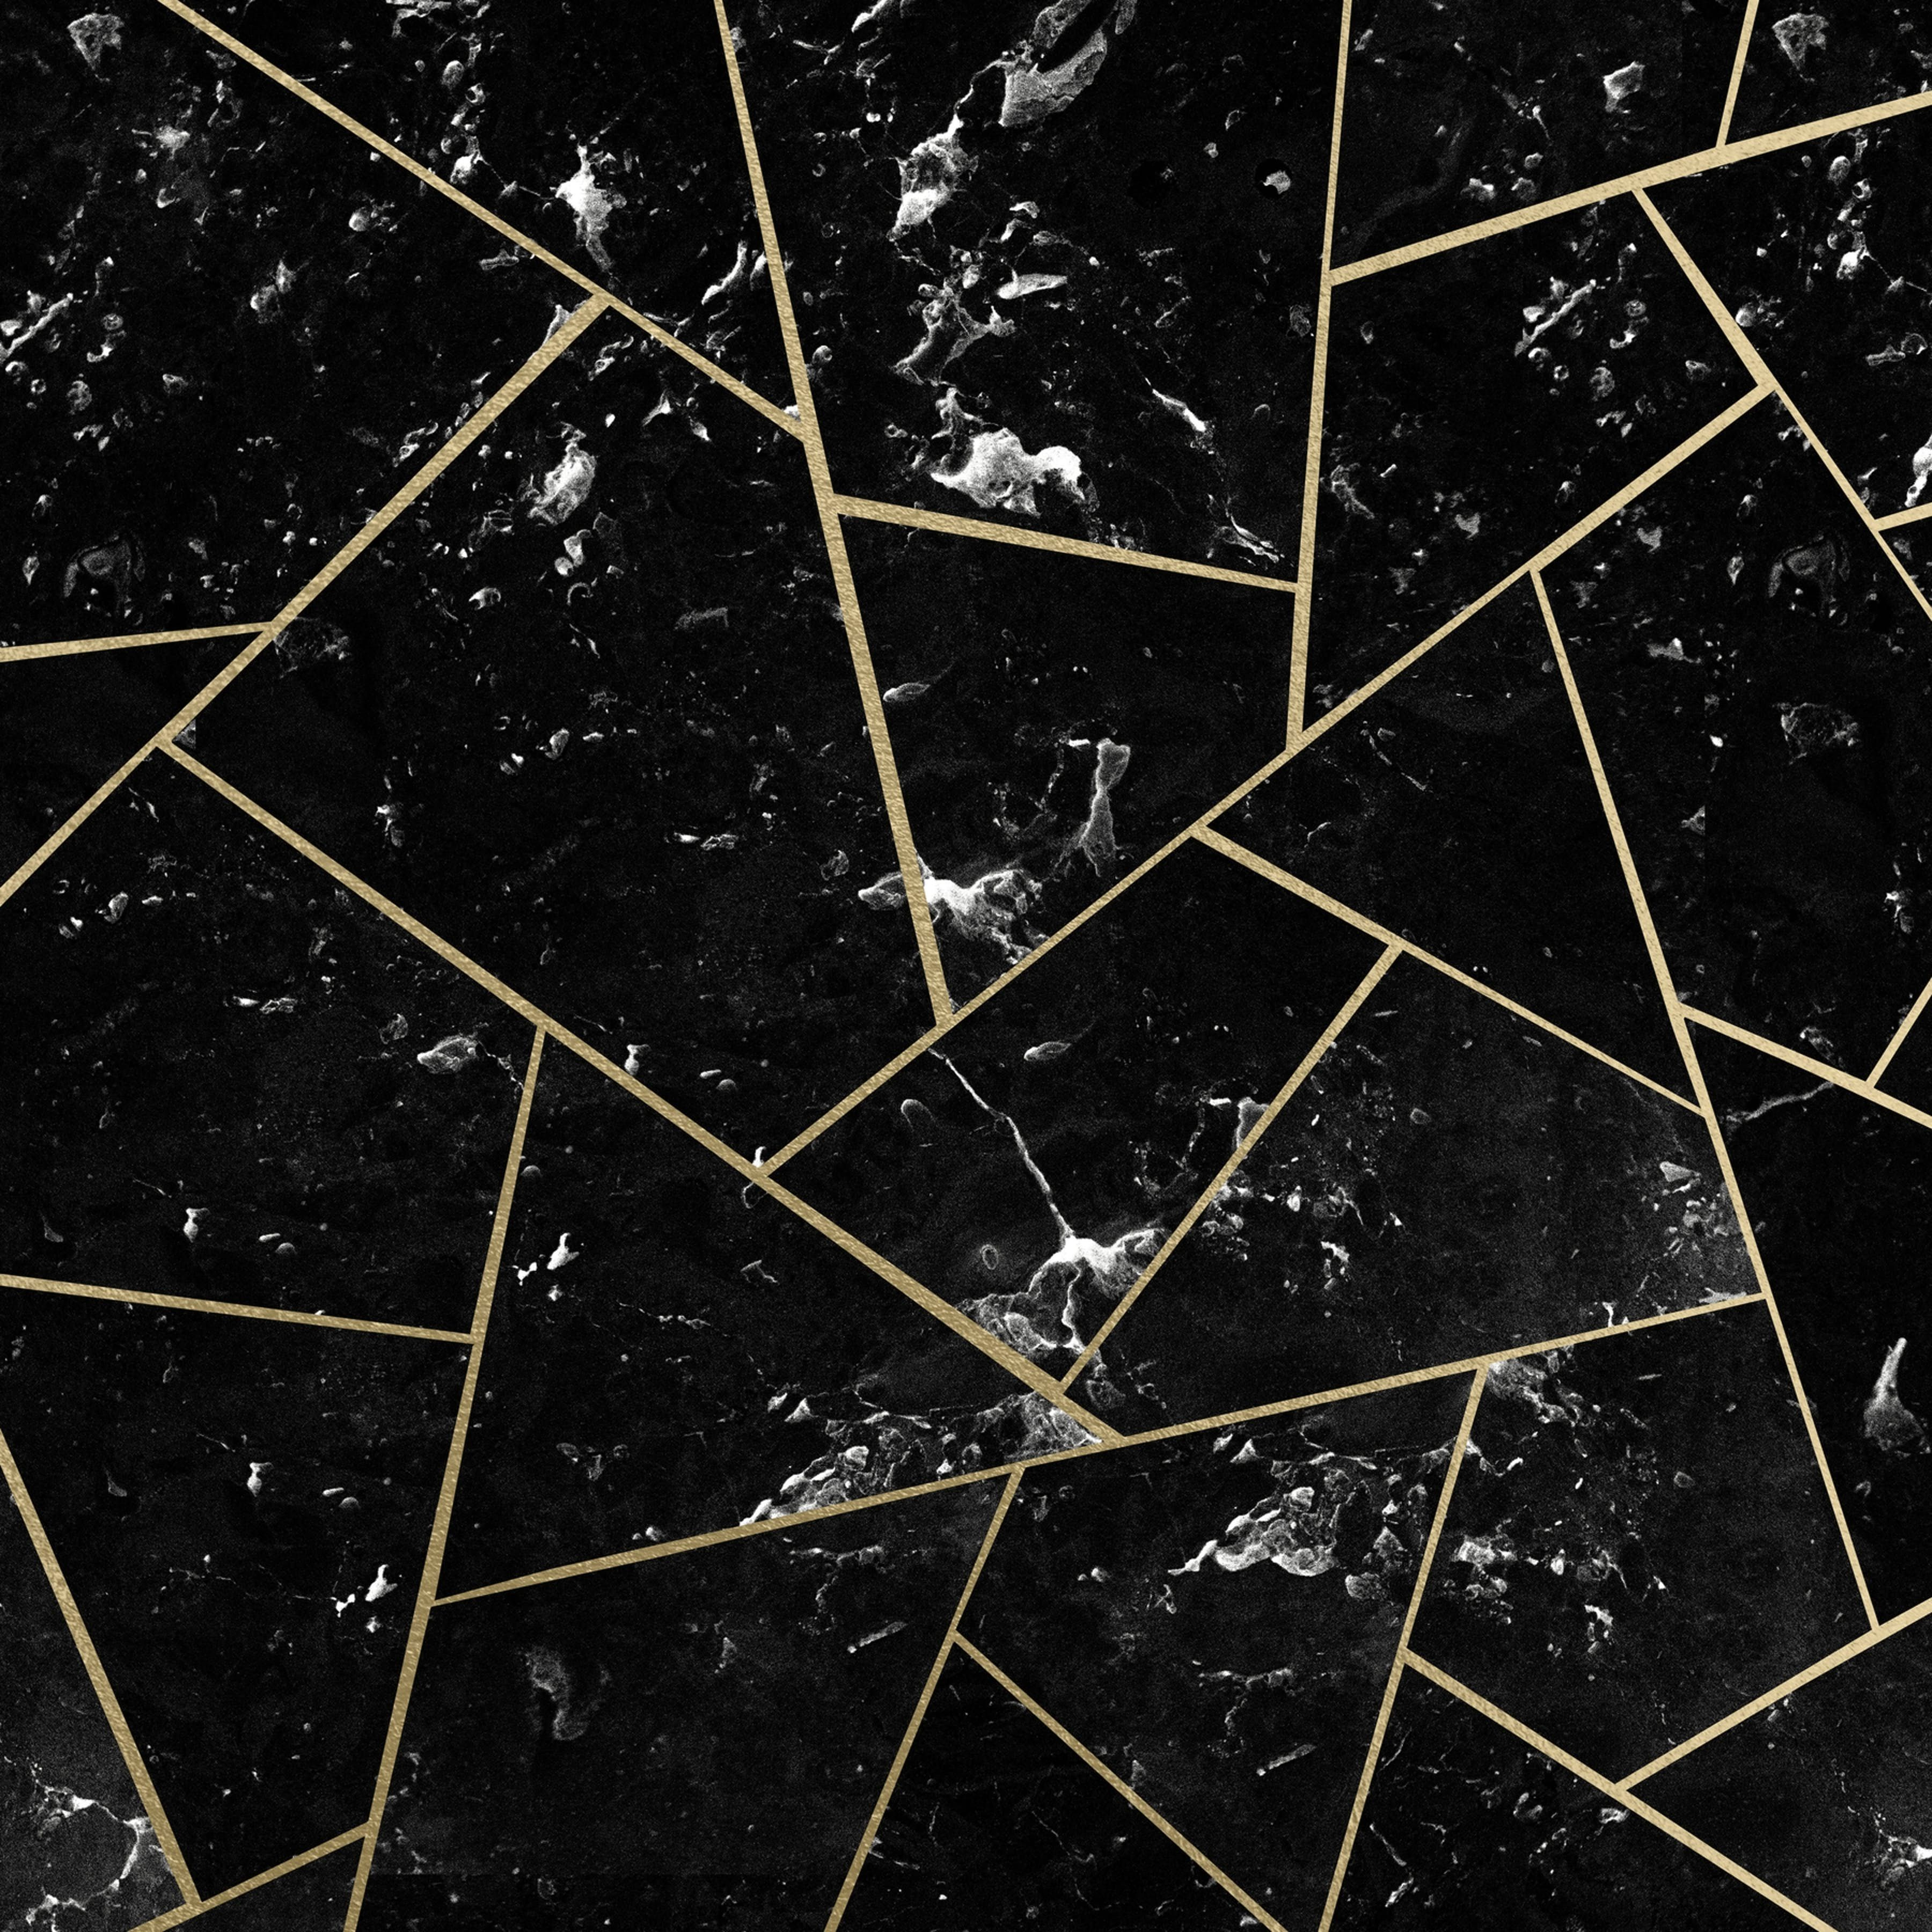 Black Marble Gold Geometric 1 Wallpaper Marble Wallpaper Black Marble Gold Wallpaper Iphone